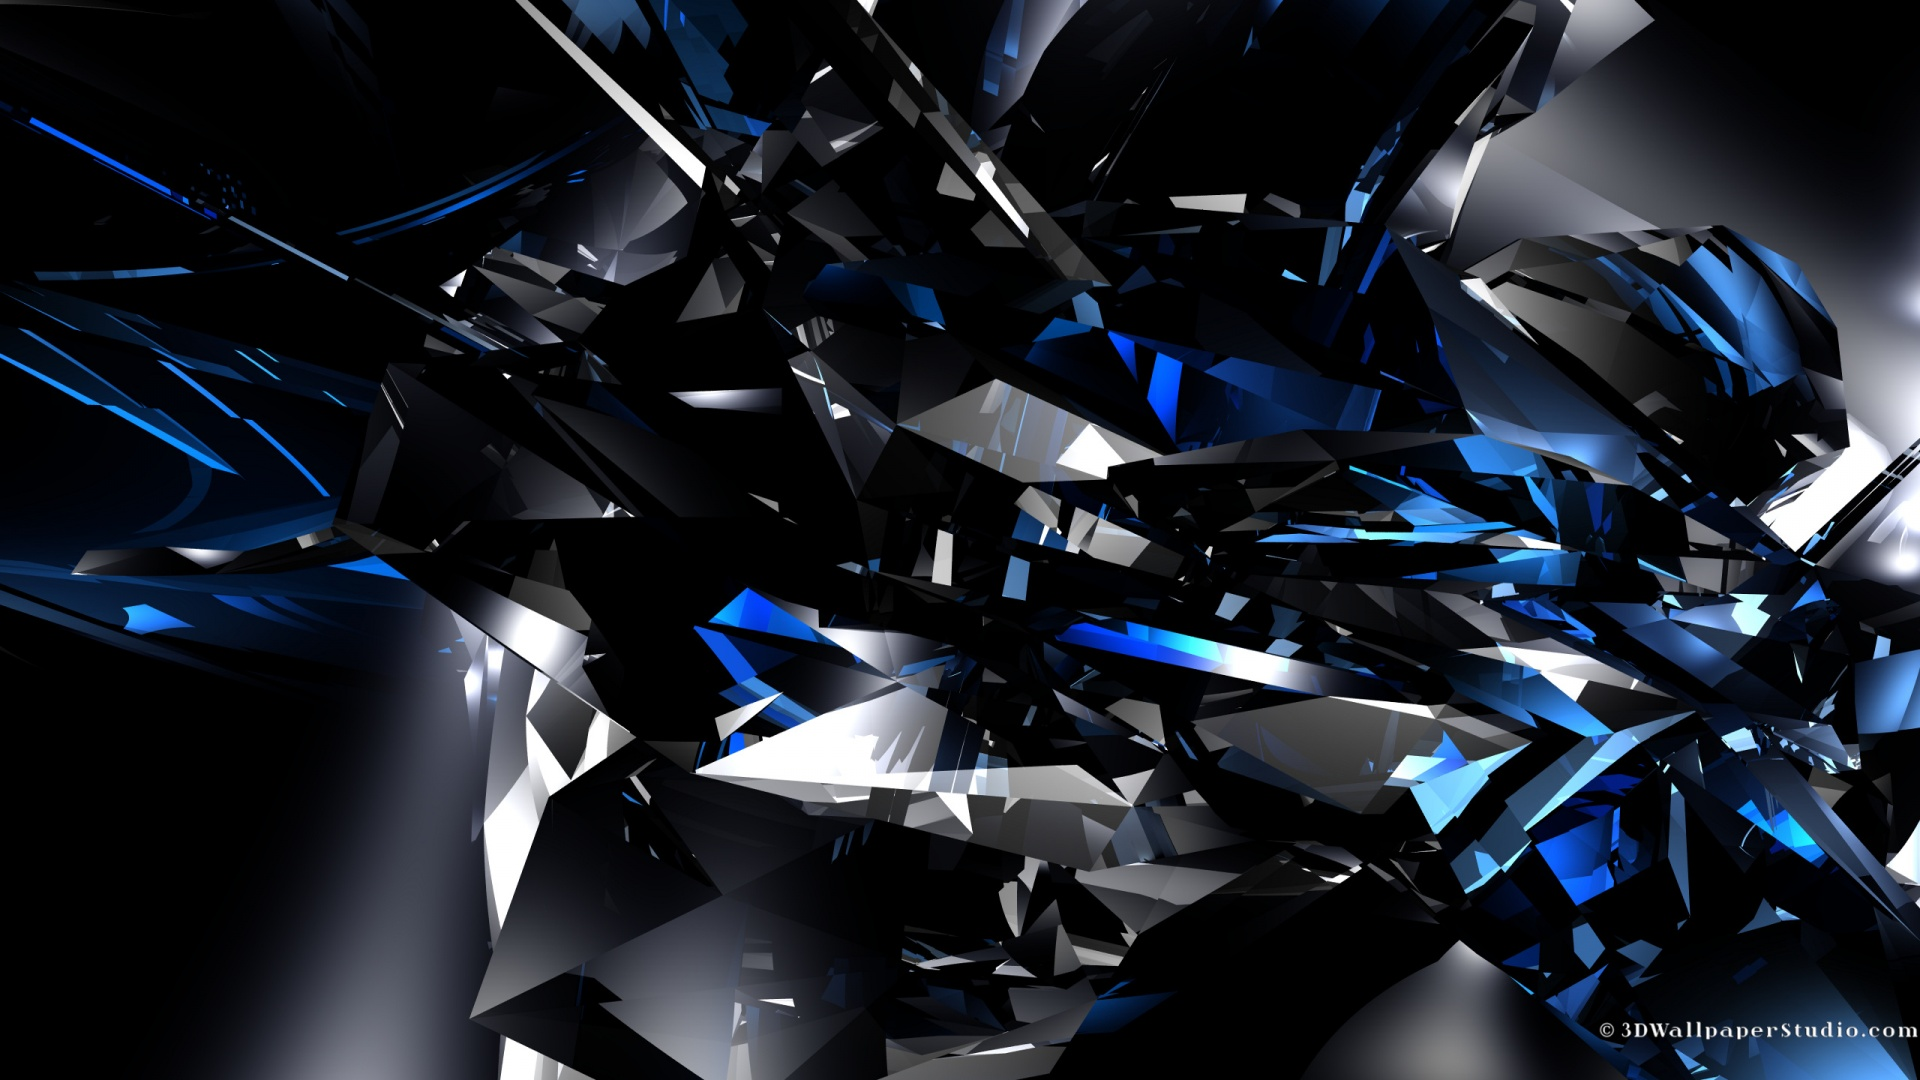 3D blue crystals wallpaper in 1920x1080 screen resolution 1920x1080